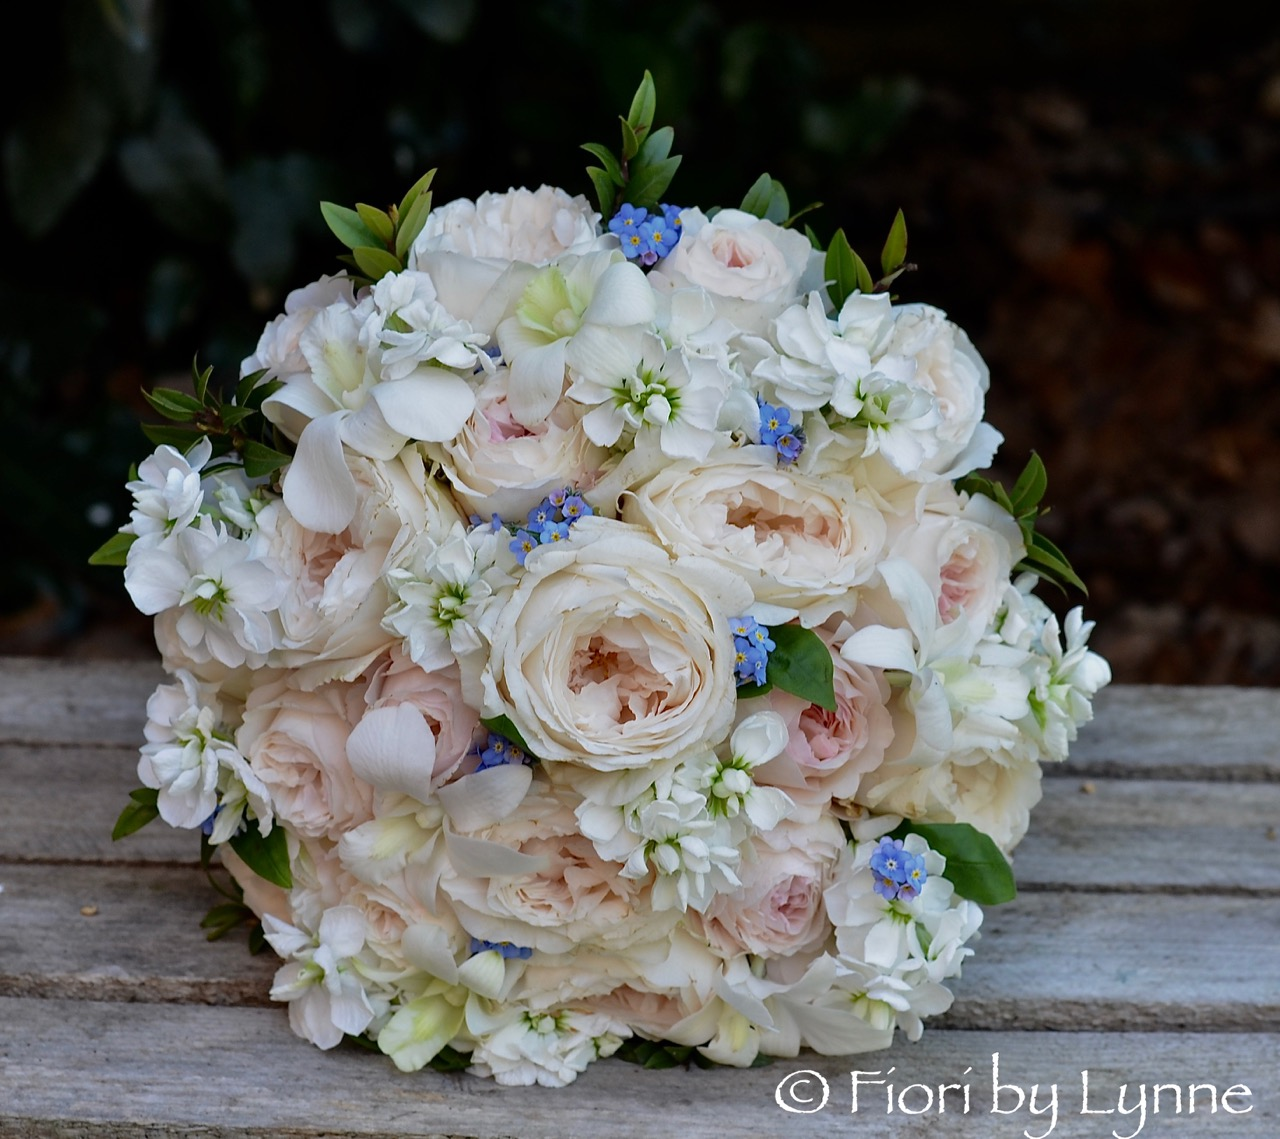 Bouquet-DavidAustin-pale-roses,white-stocks,singapore-orchid,blue-forget-me-not..jpg